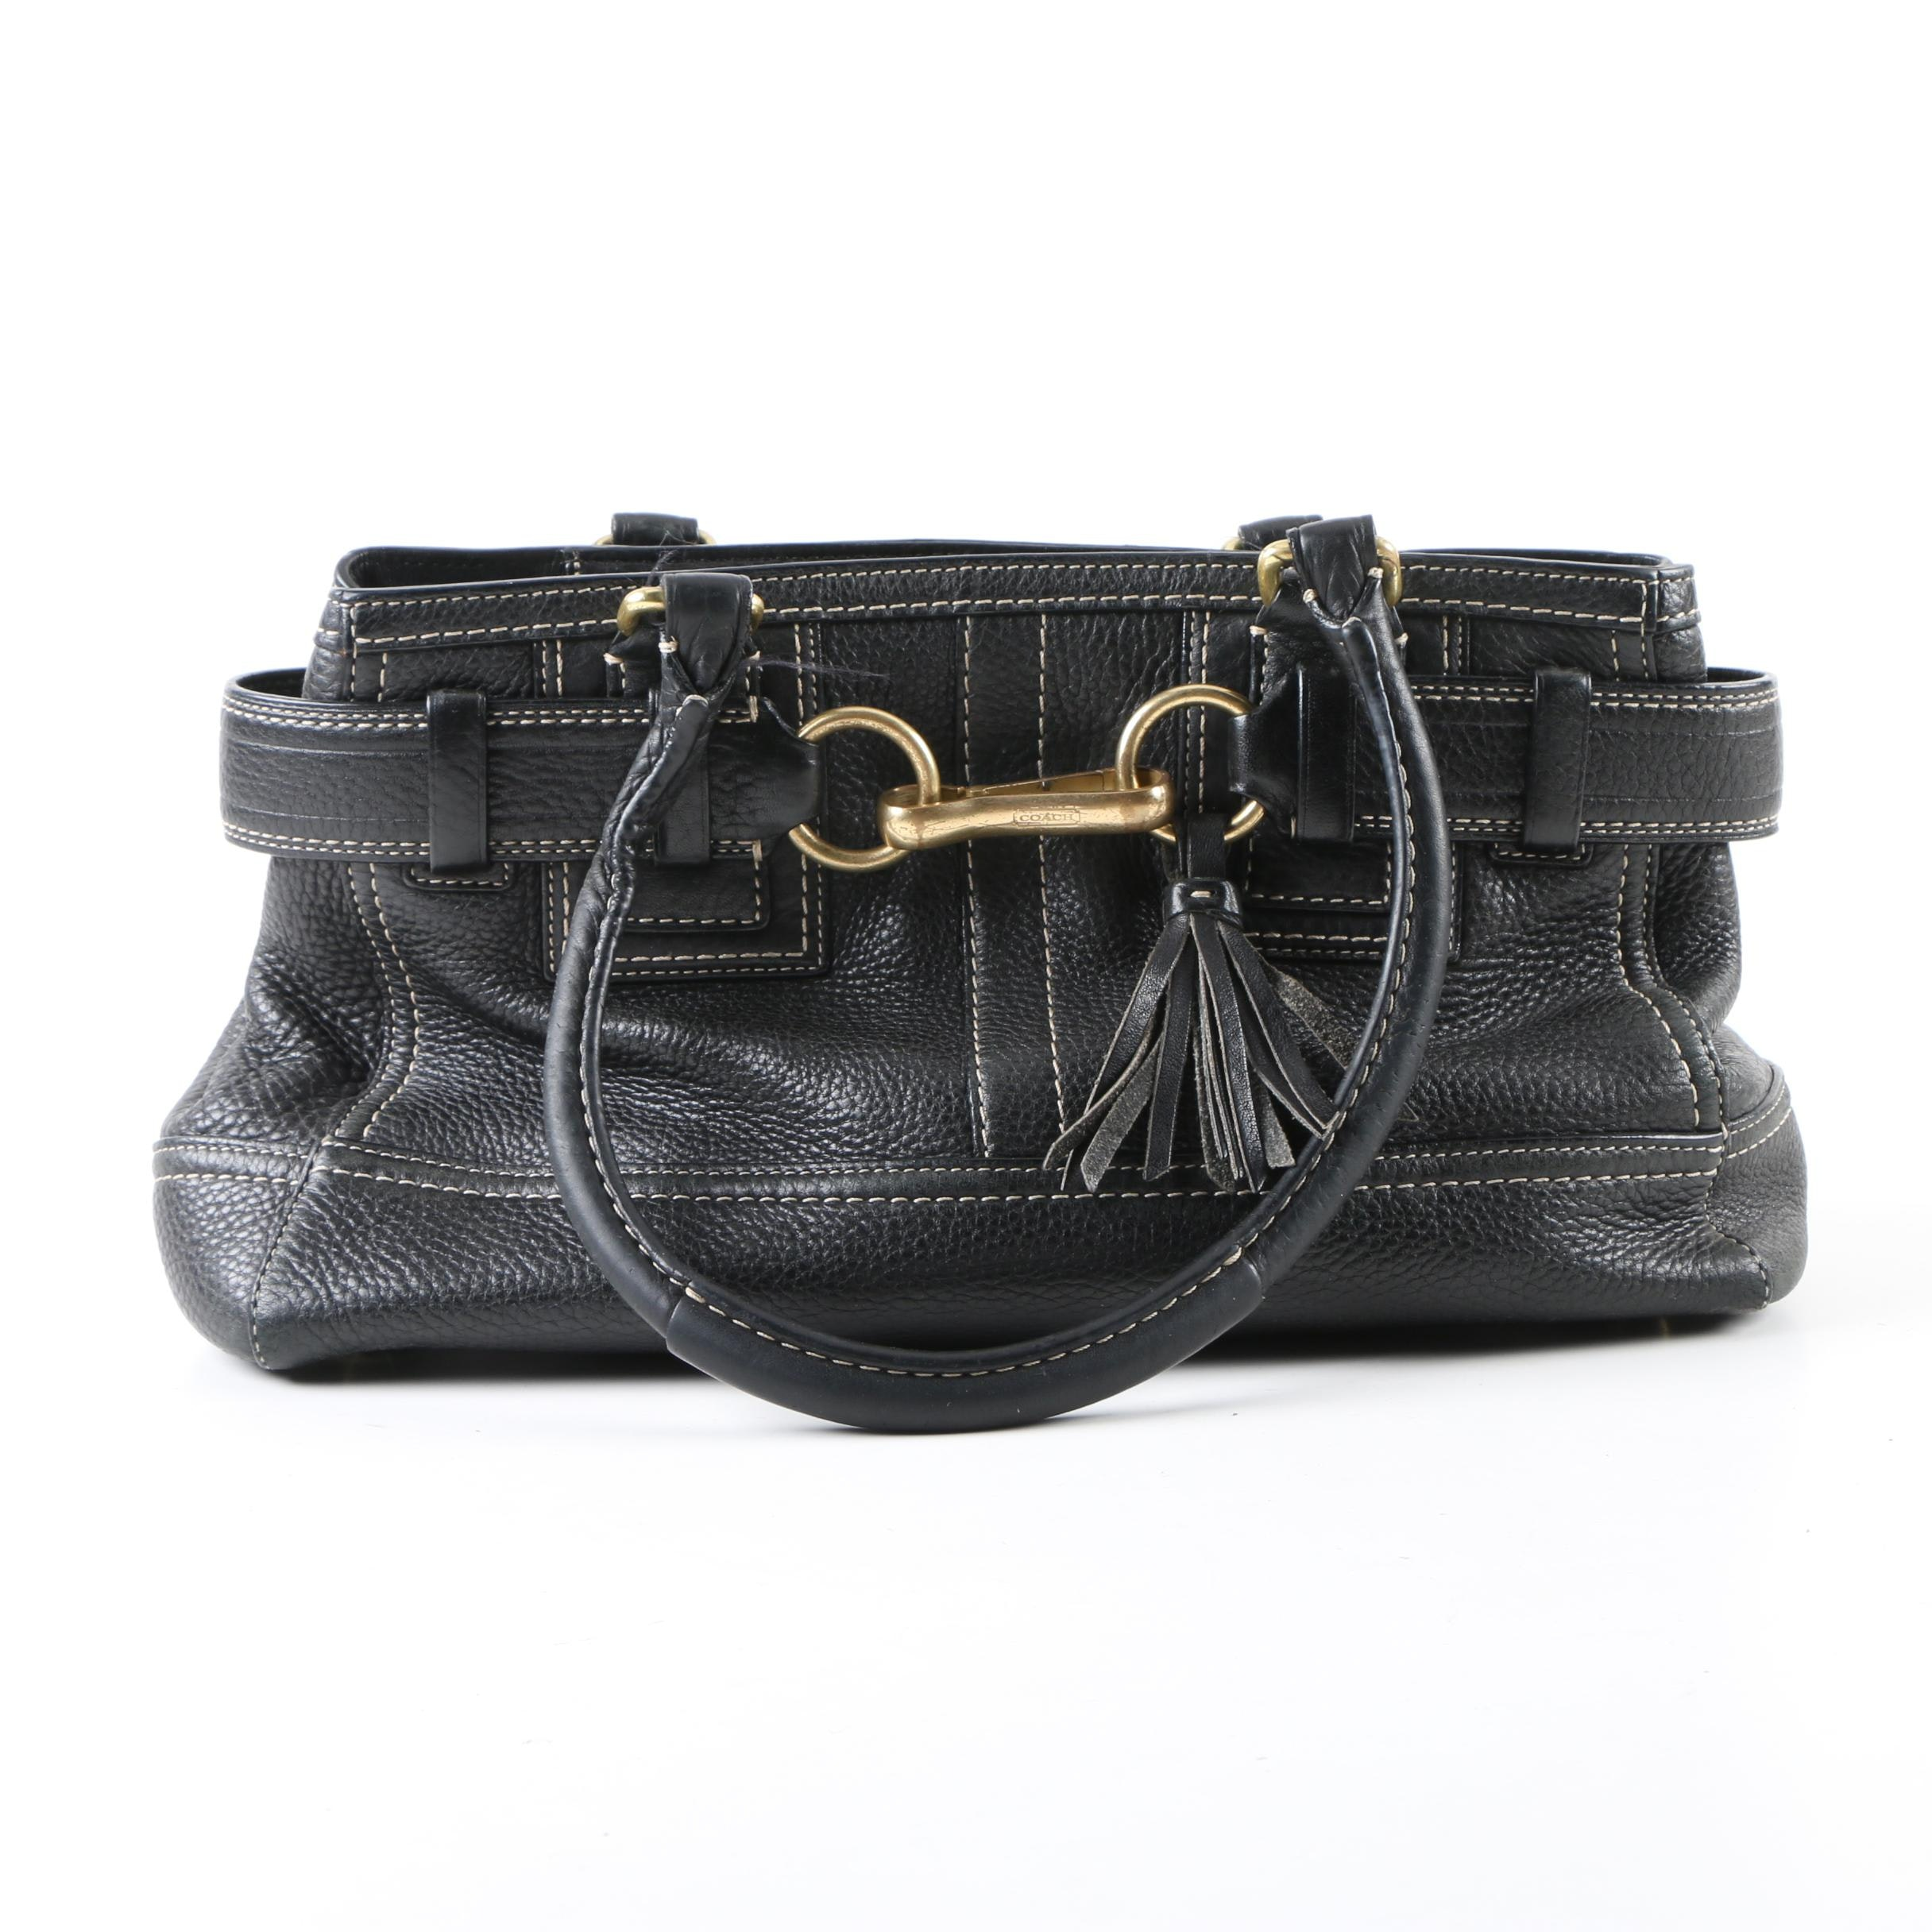 Coach Black Pebbled Leather Hampton Carryall Satchel